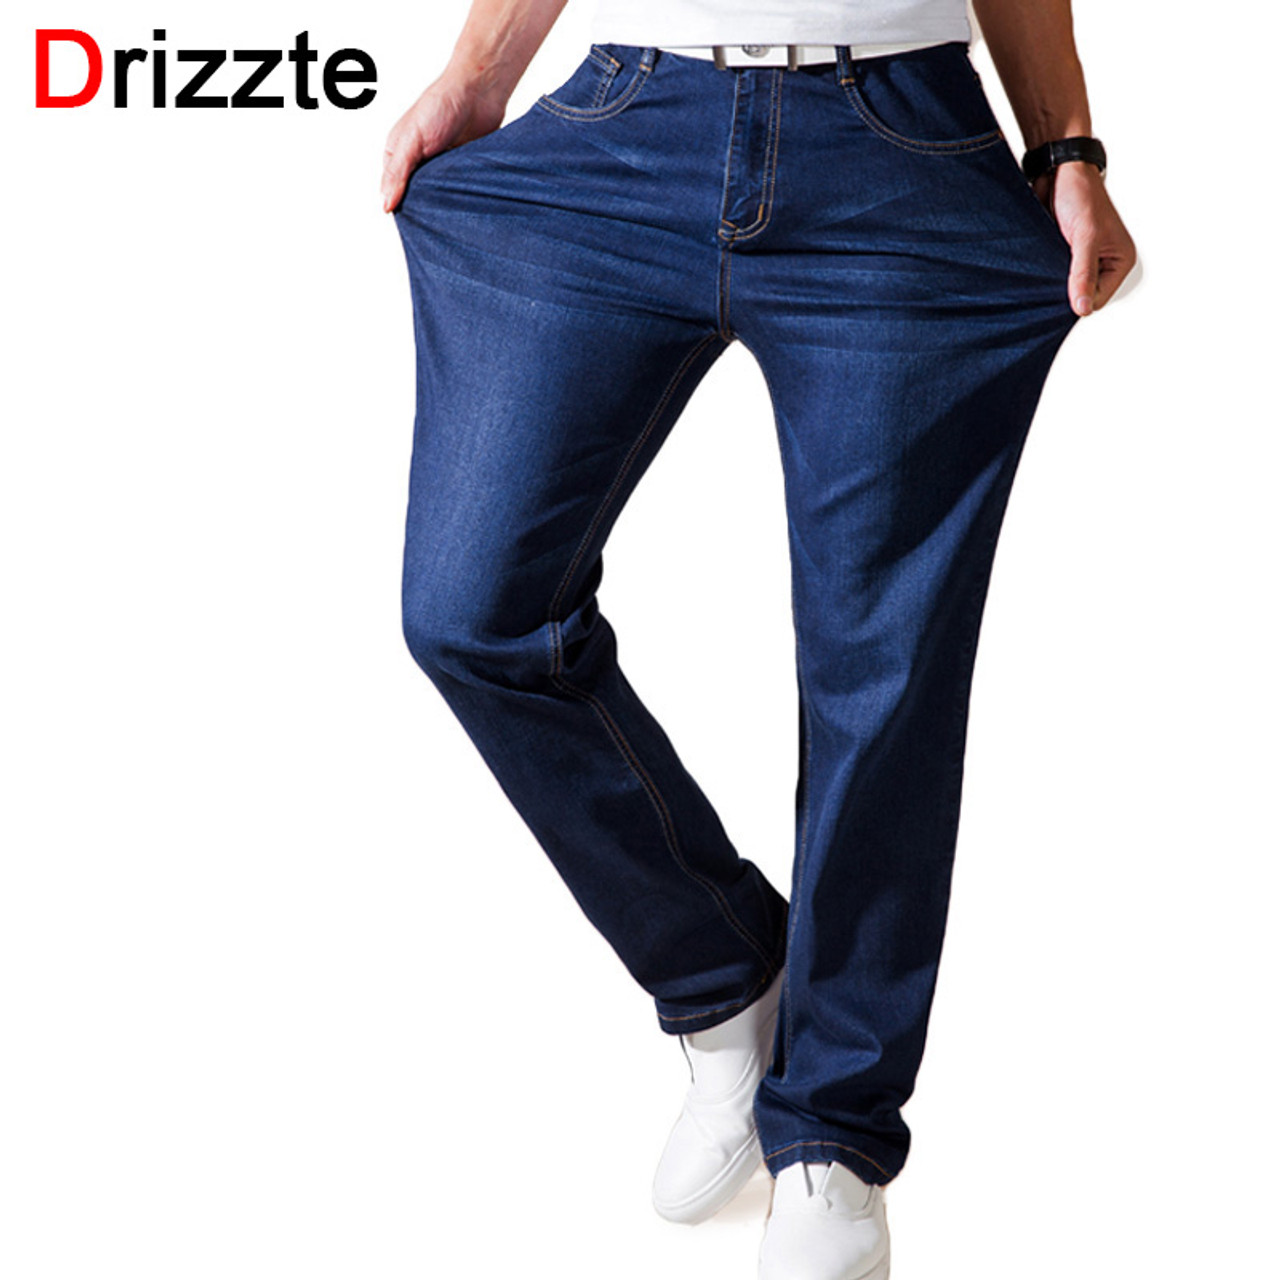 d5a5b6a1cd2 Drizzte Summer Thin Jeans Fashion Mens Stretch Denim Jean Loose Fit Relax Denim  Trousers Pants Jean ...